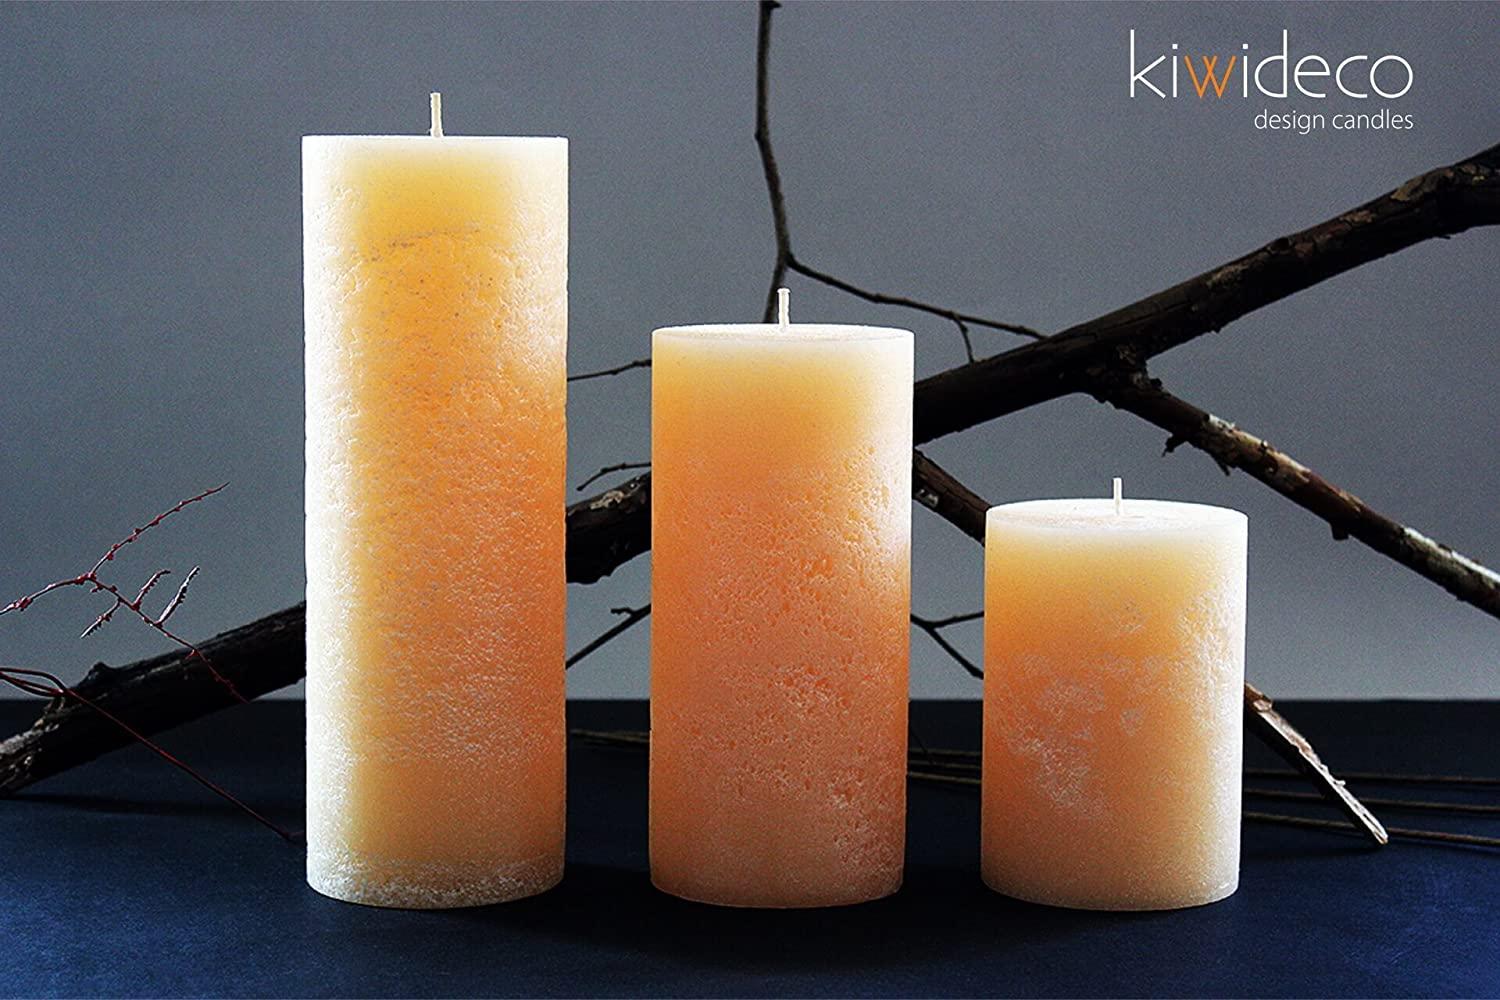 Handmade Rustic Pillar Large Candles Set (Beige) - High quality rustic candles. Hot cast. Colored wax. Handmade. Kiwideco